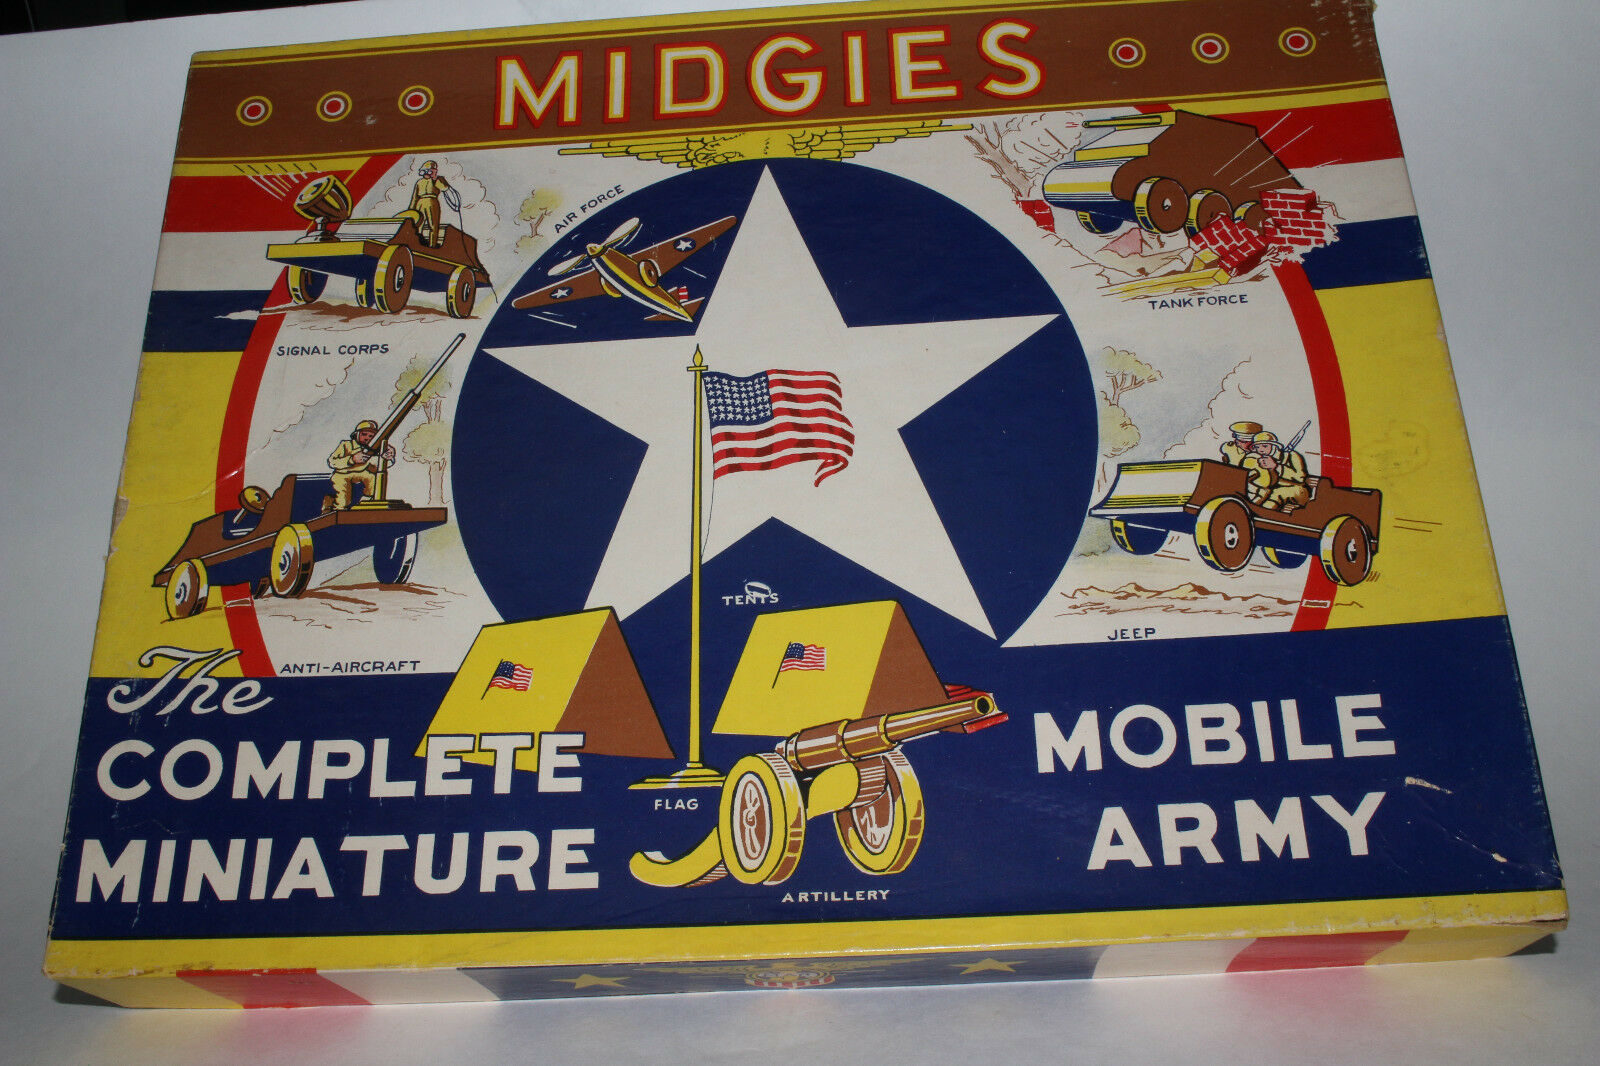 Midgies   The Complete Miniature Mobile Army  Jaymar Specialty Co. Lot  2